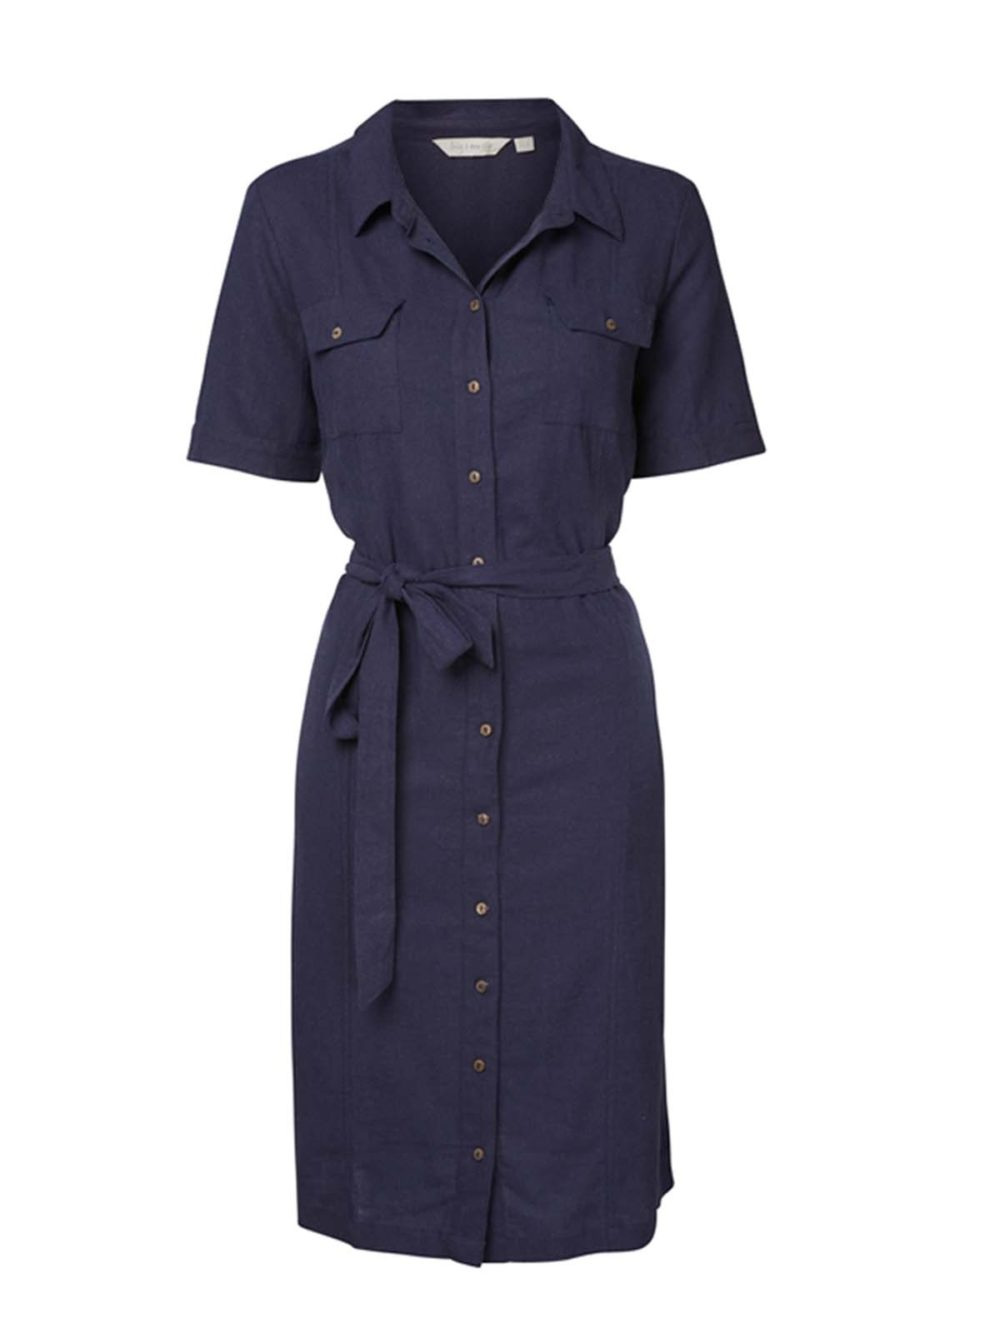 Shirt Dress Plain Lily and Me Katie Kerr Women's Clothing